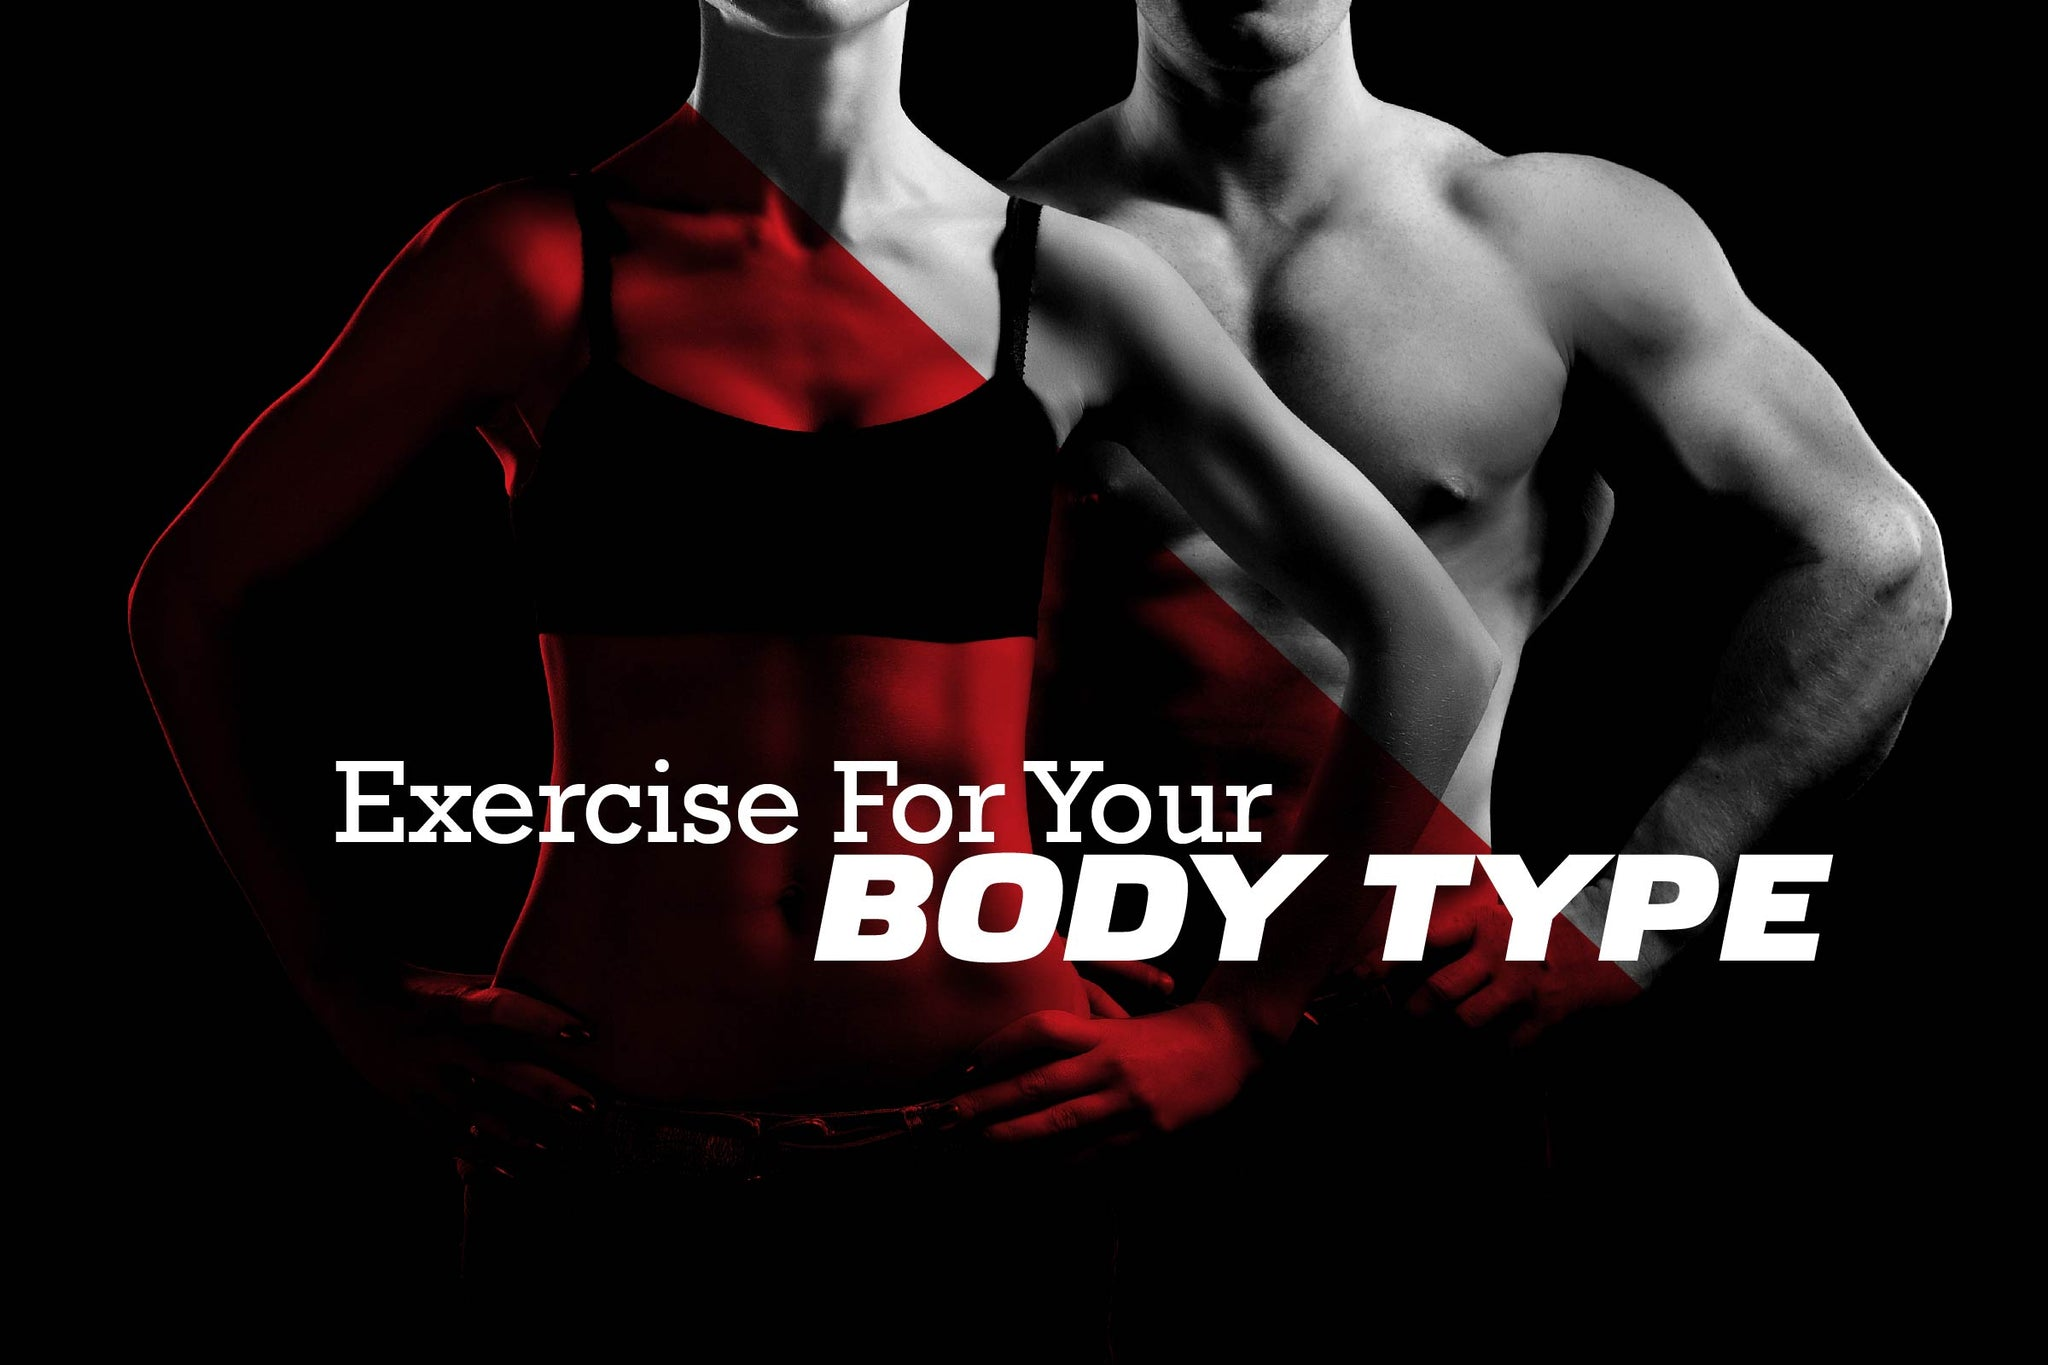 How To Choose a Workout Based on Your Body Type